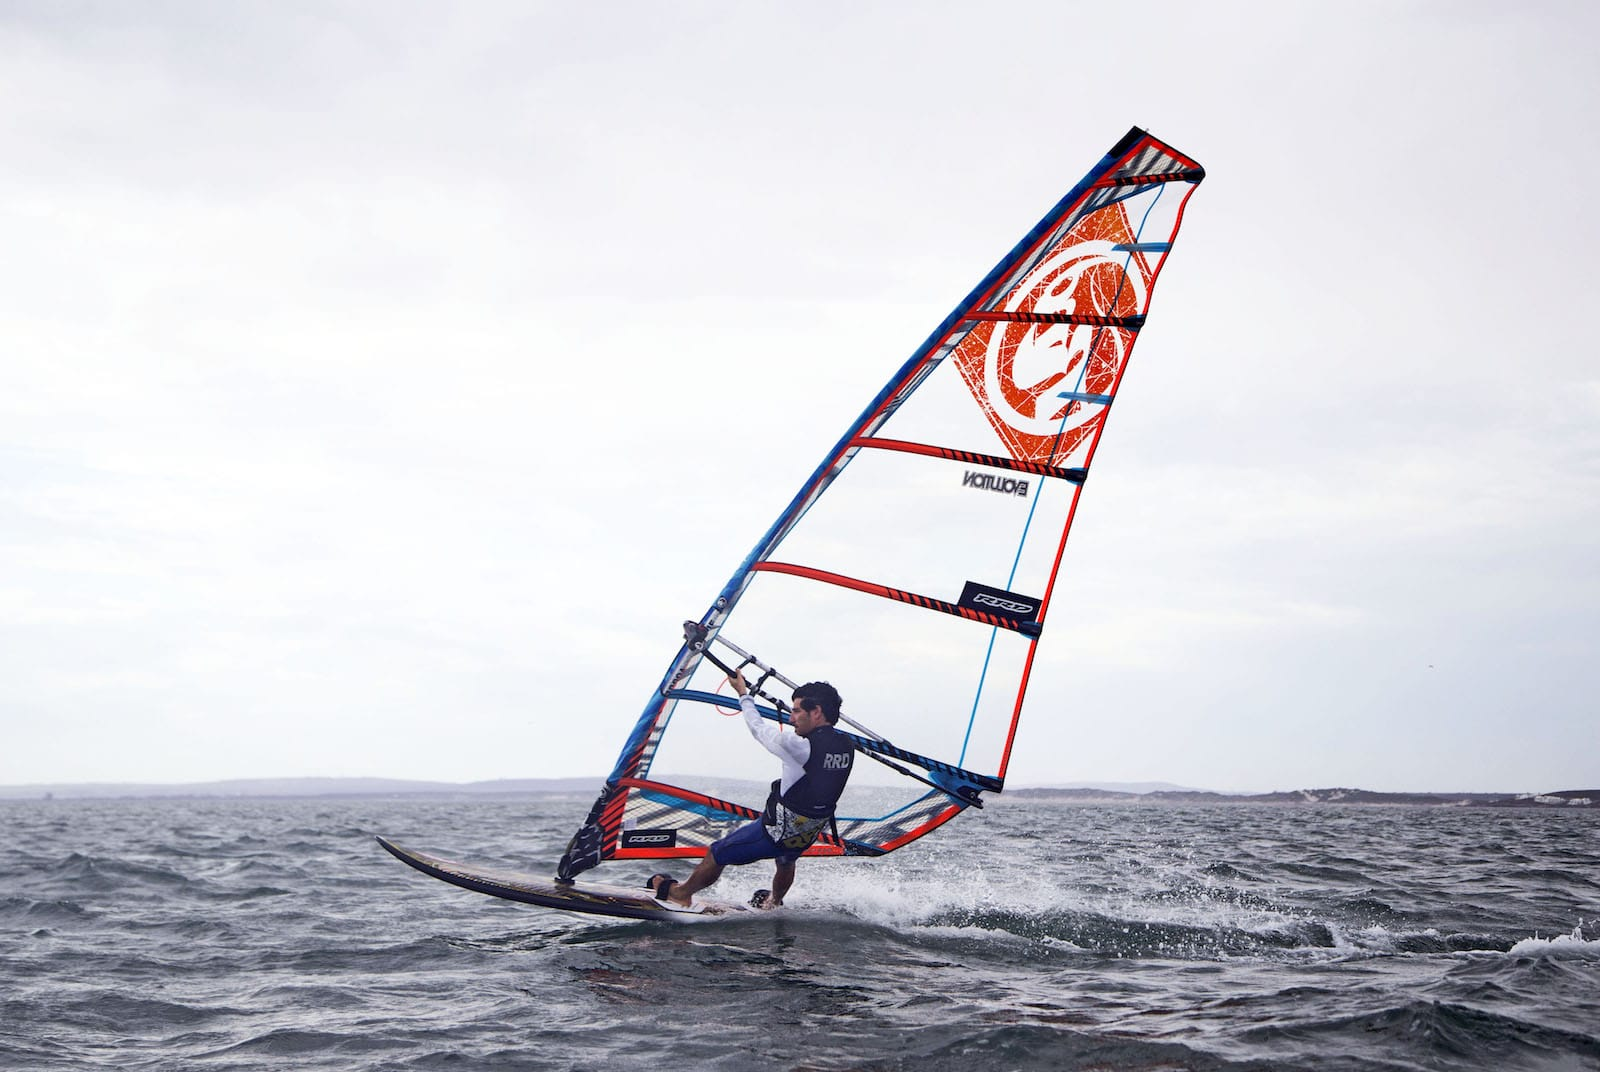 evolution mk8 orange blue rrd freeride plachta windsurfing karlin